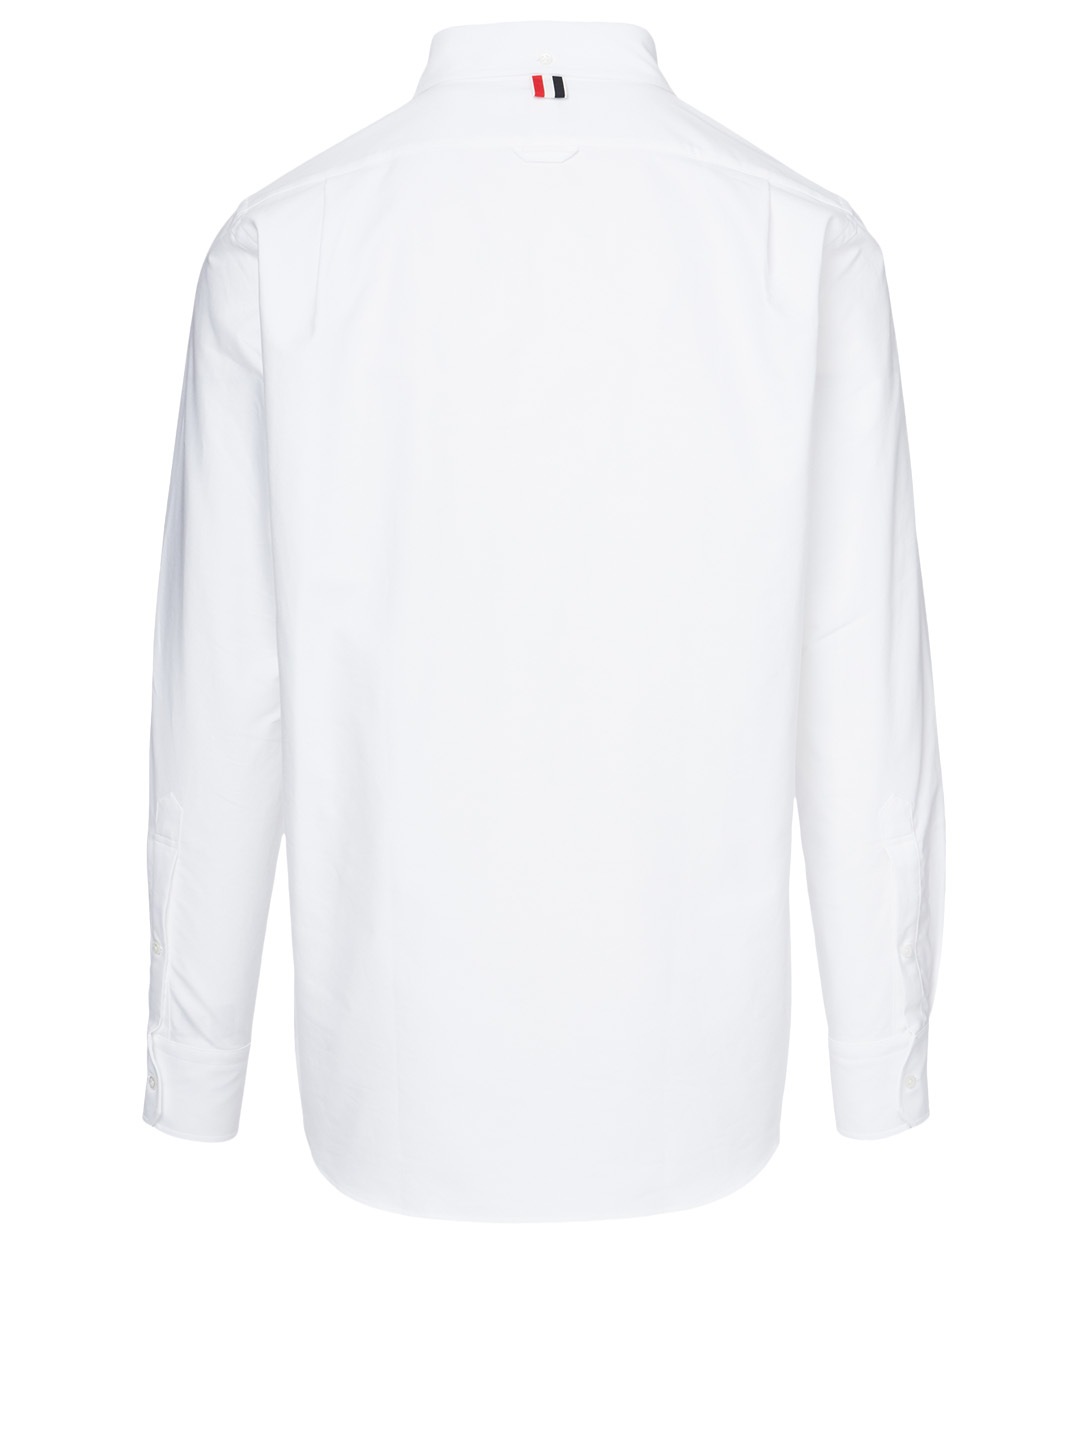 THOM BROWNE Cotton Shirt With Dolphin Embroidery Men's White